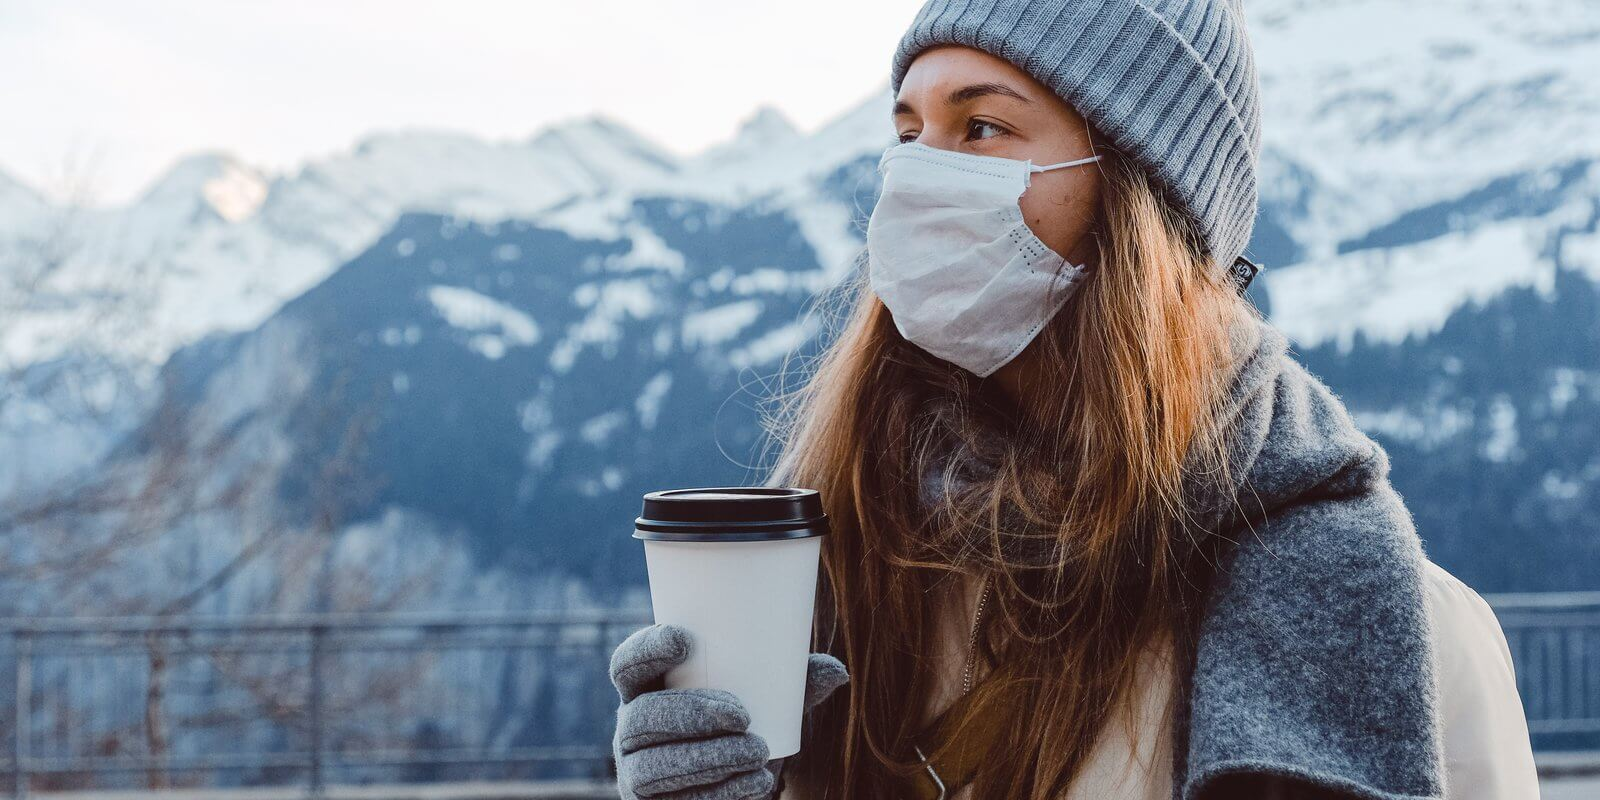 Image of a Woman wearing warm clothes and mask in winters holding a coffee cup